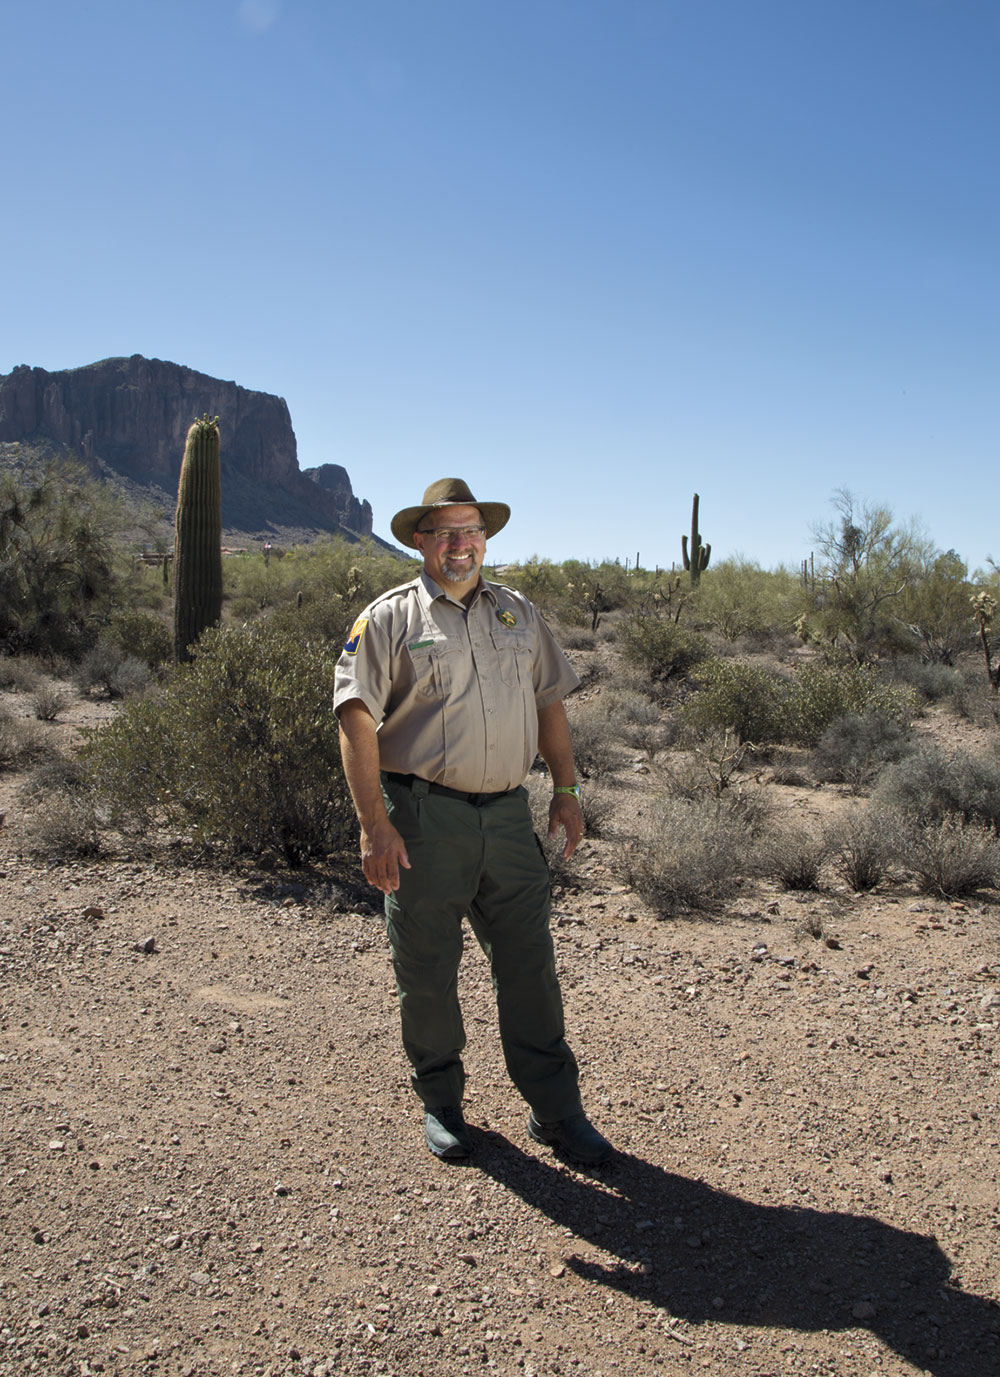 Arizona State Parks & Trails ranger Louis Juers at Lost Dutchman State Park. Photo by Mirelle Inglefield